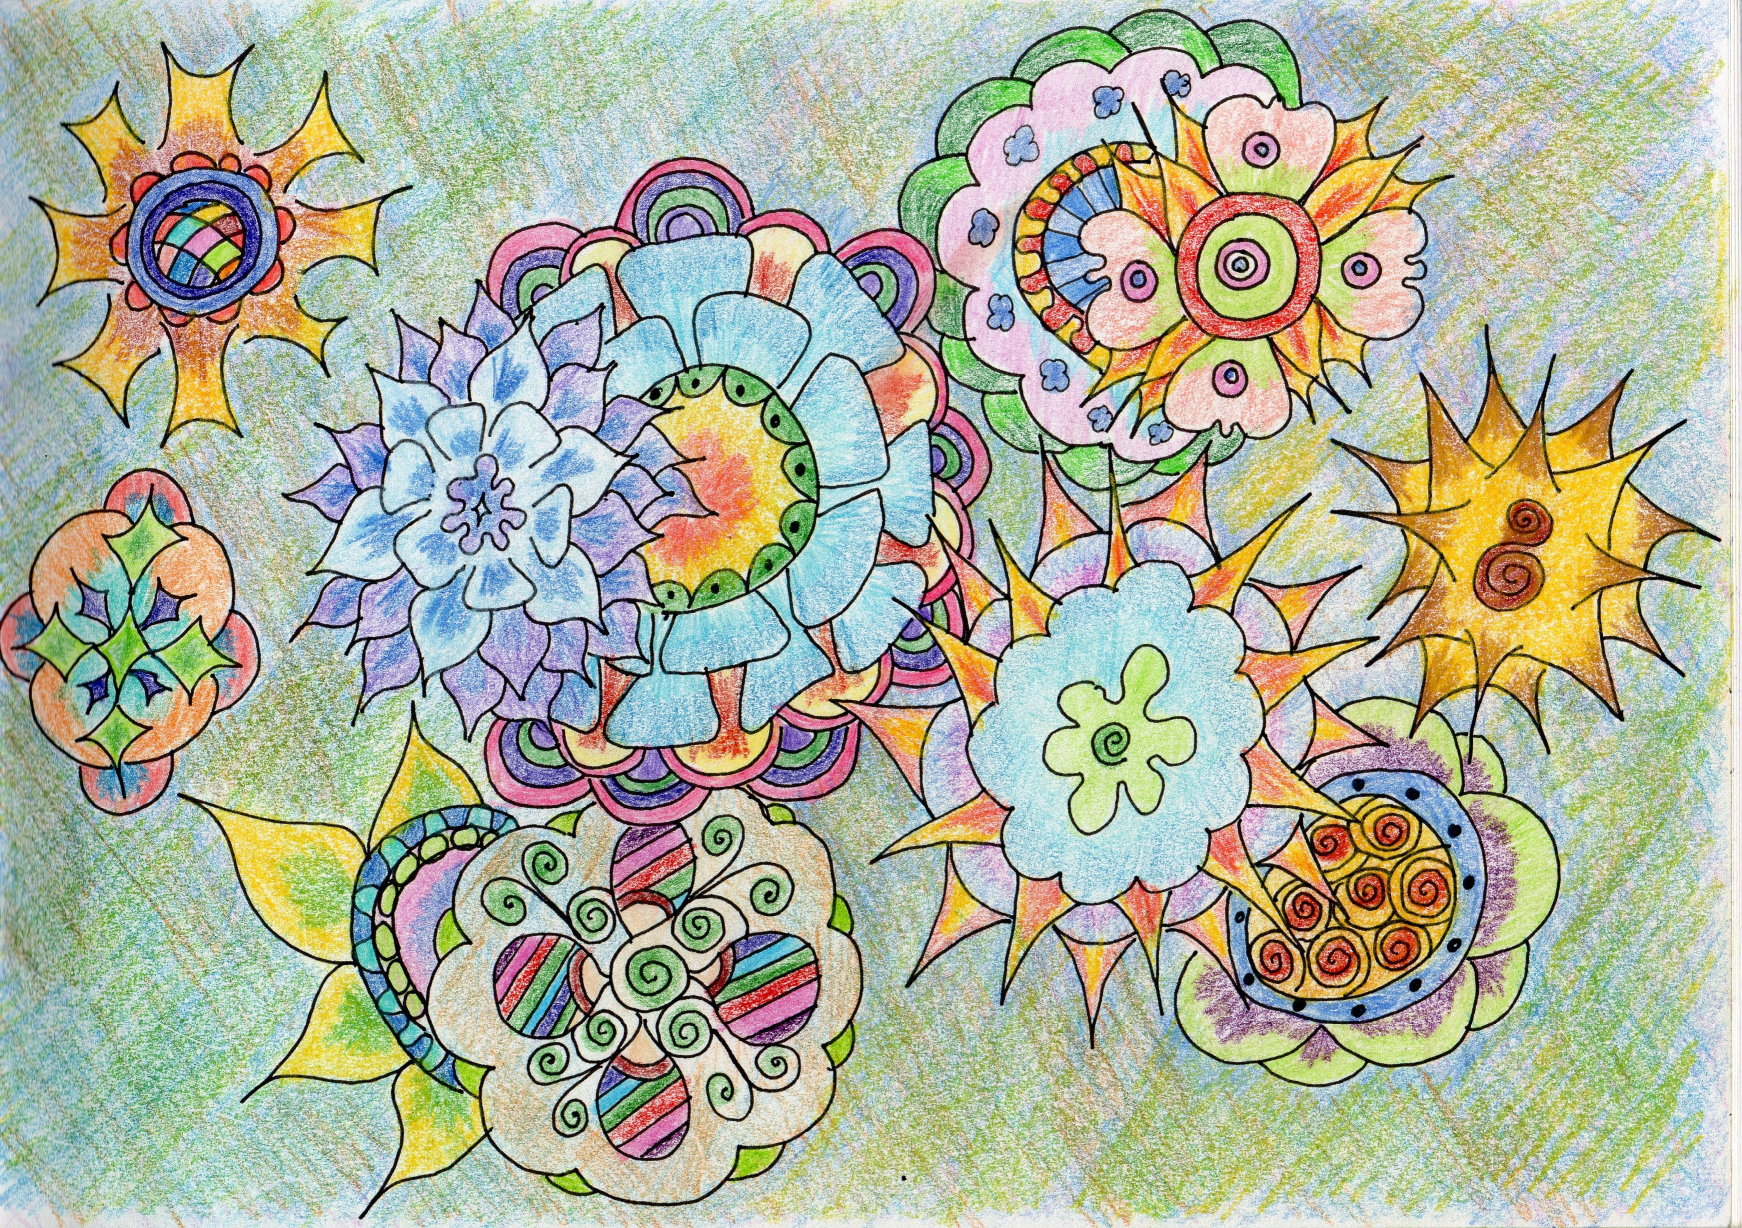 Zen doodle colour - The Above Is One Of My Latest Doodle Zentangles Rendered In A Variety Of Coloured Pencils Including Watercolour Pencil And Derwent Metallic Pencils For The